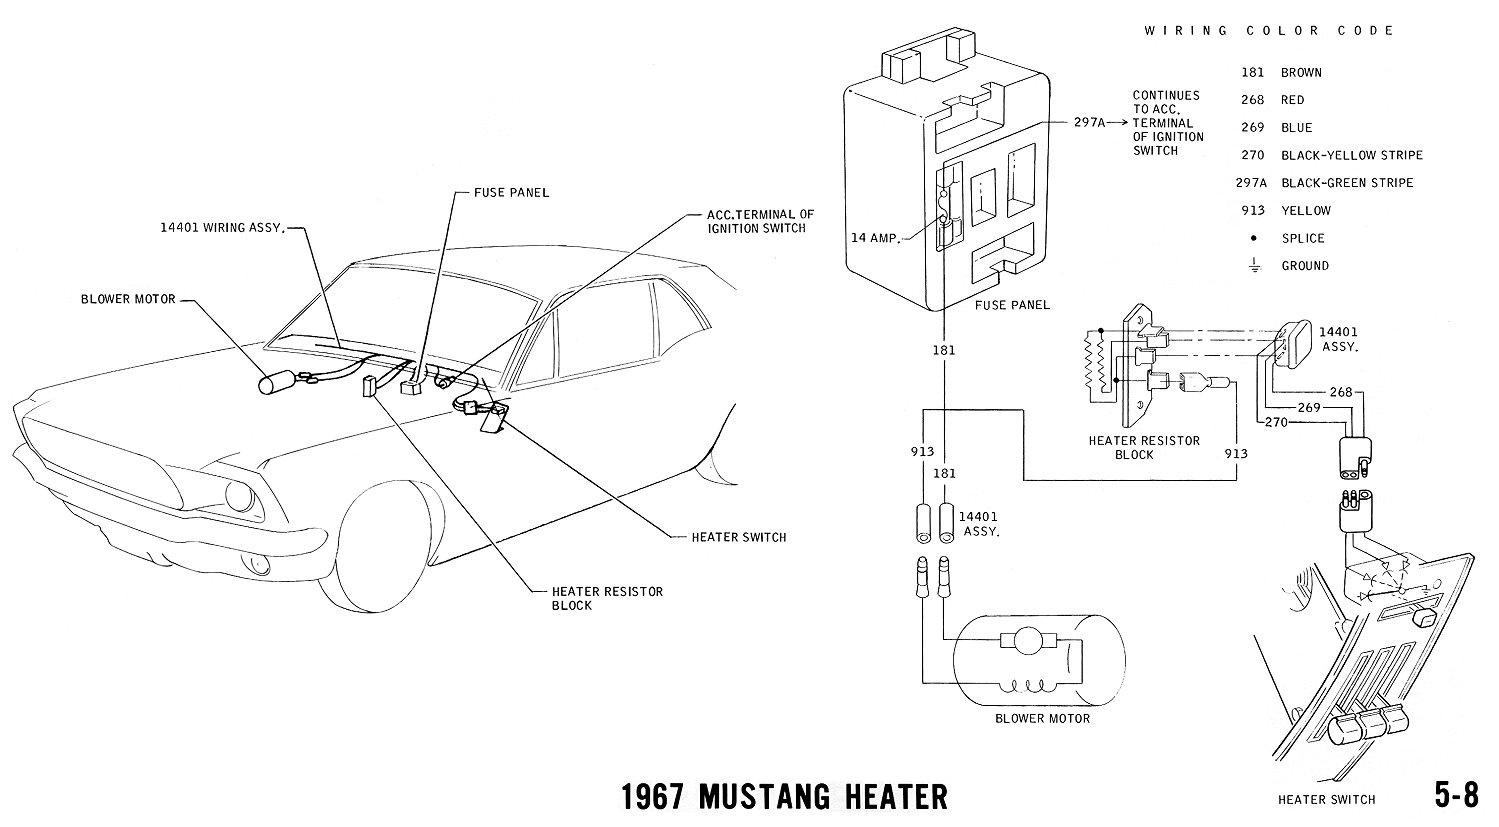 65 mustang heater wiring diagram  65  free engine image